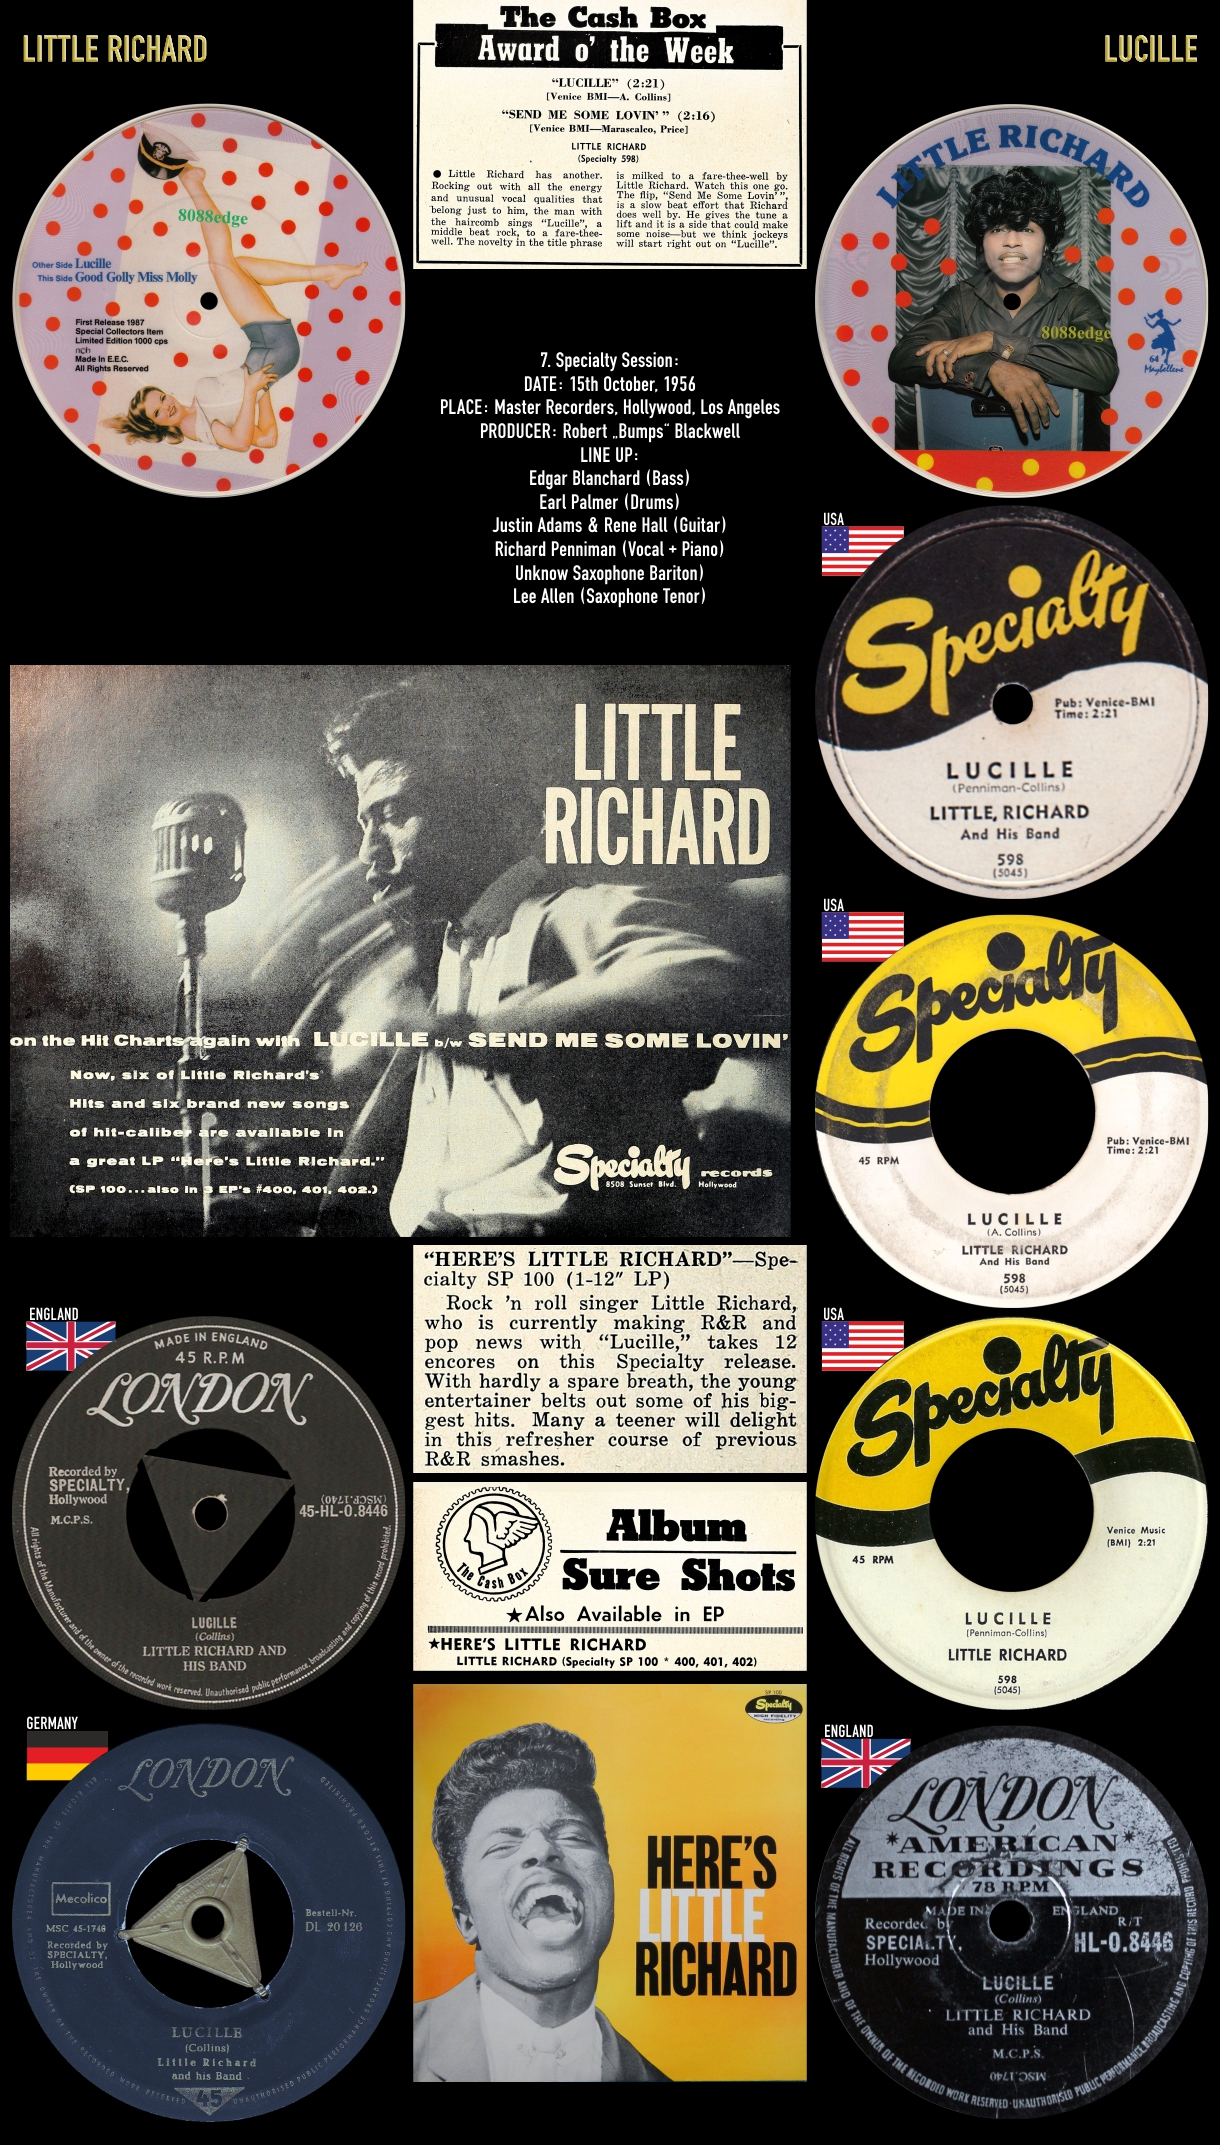 570629_Little Richard_Lucille